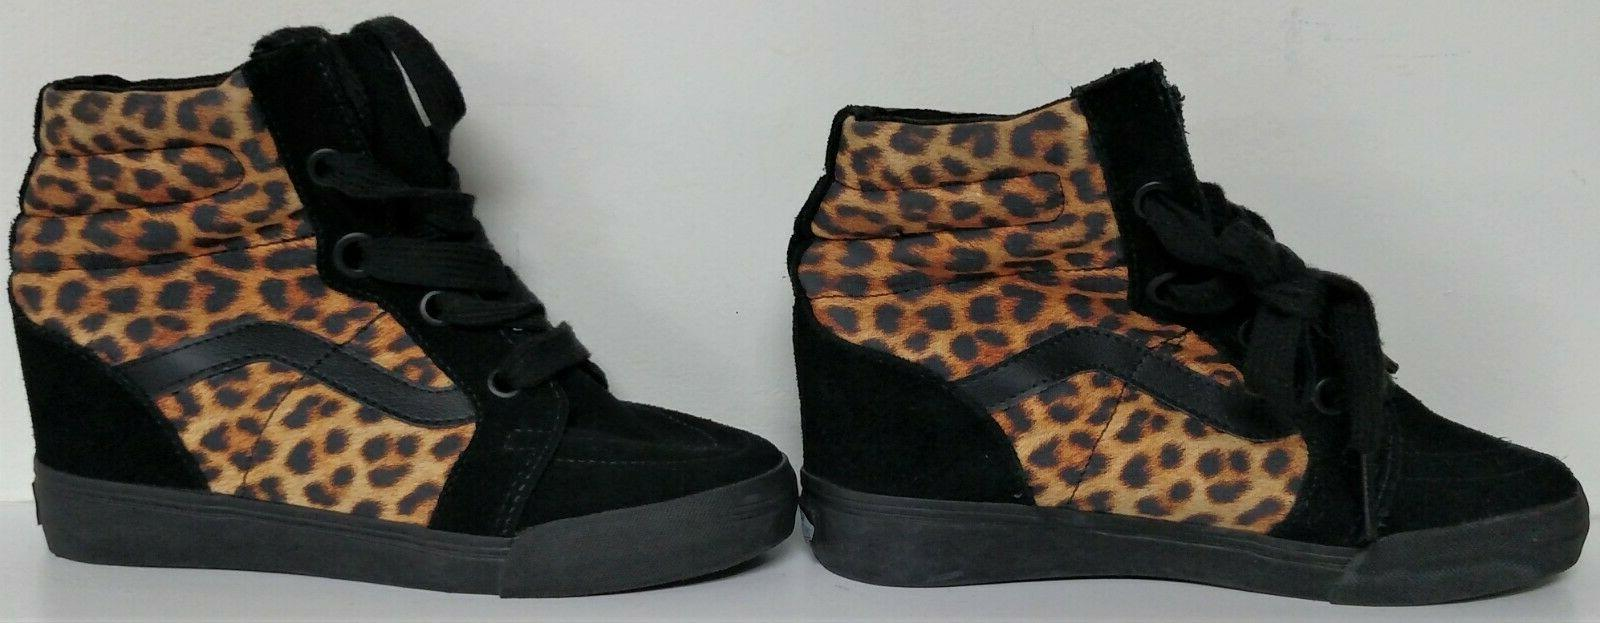 NEW Animal Print Hidden High-Top Shoes-Size